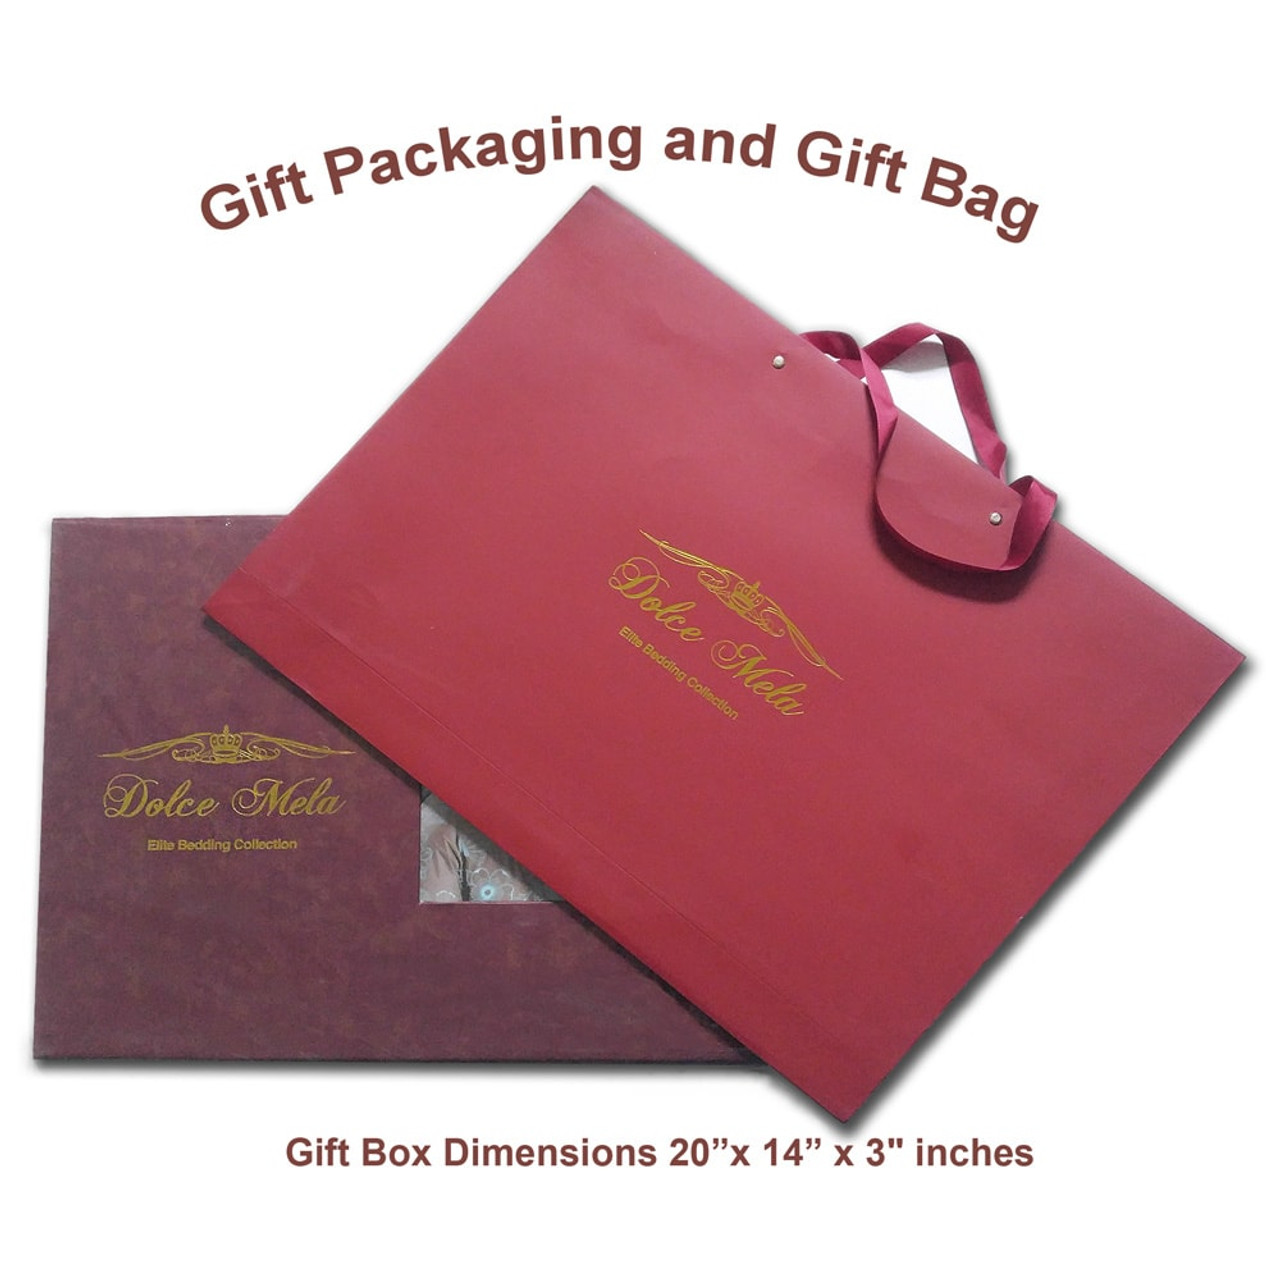 Dolce Mela Bedding Gift Packaging Drop-Shipping